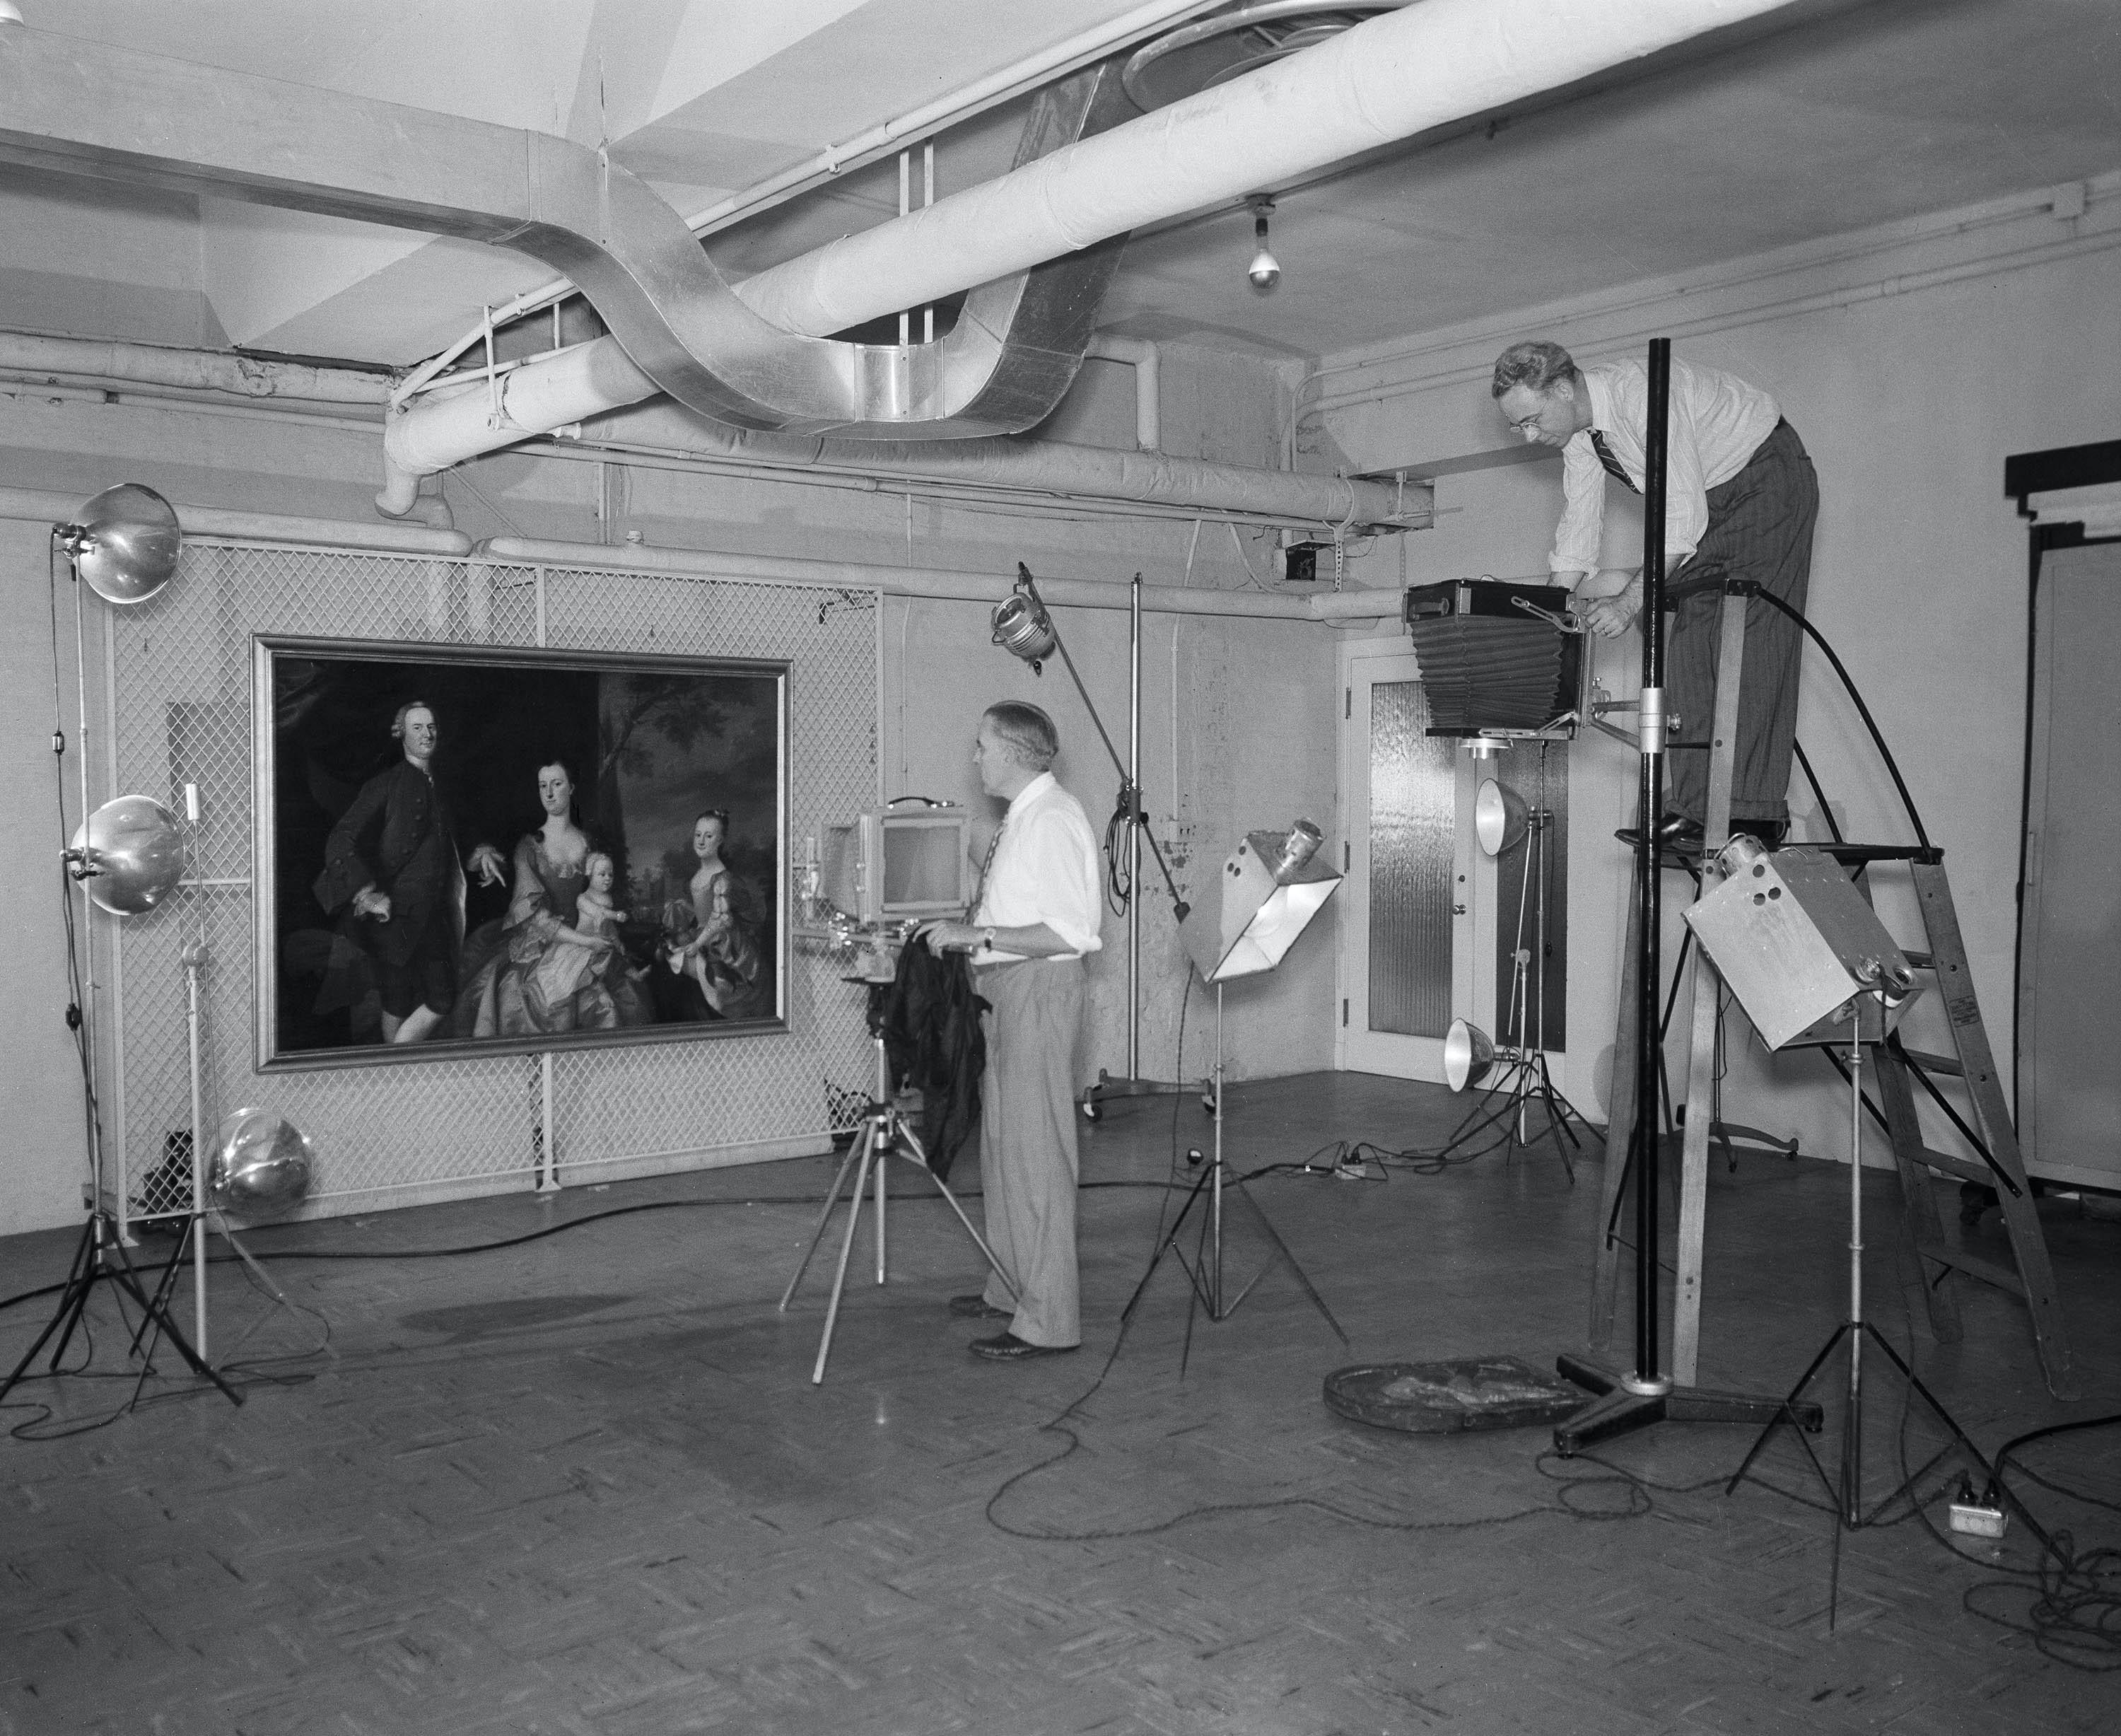 Old photo of staff photographers photographing art